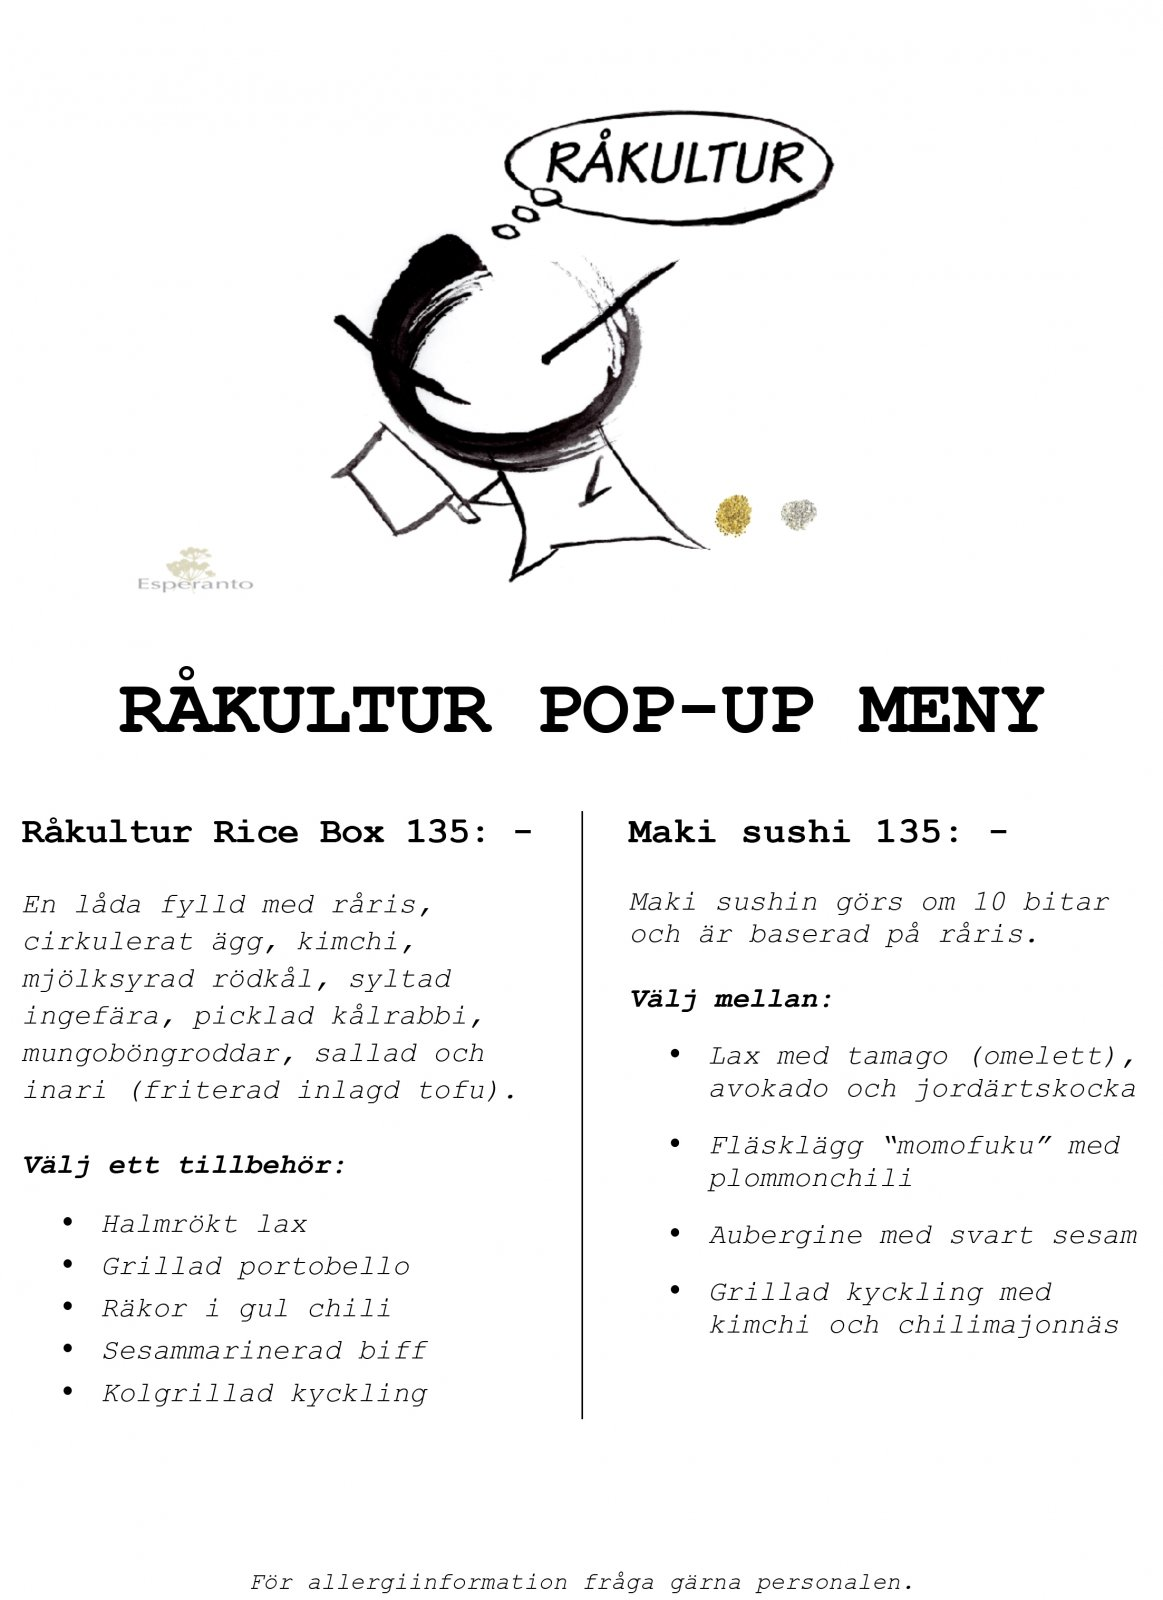 Råkultur POP UP meny 2018.docx